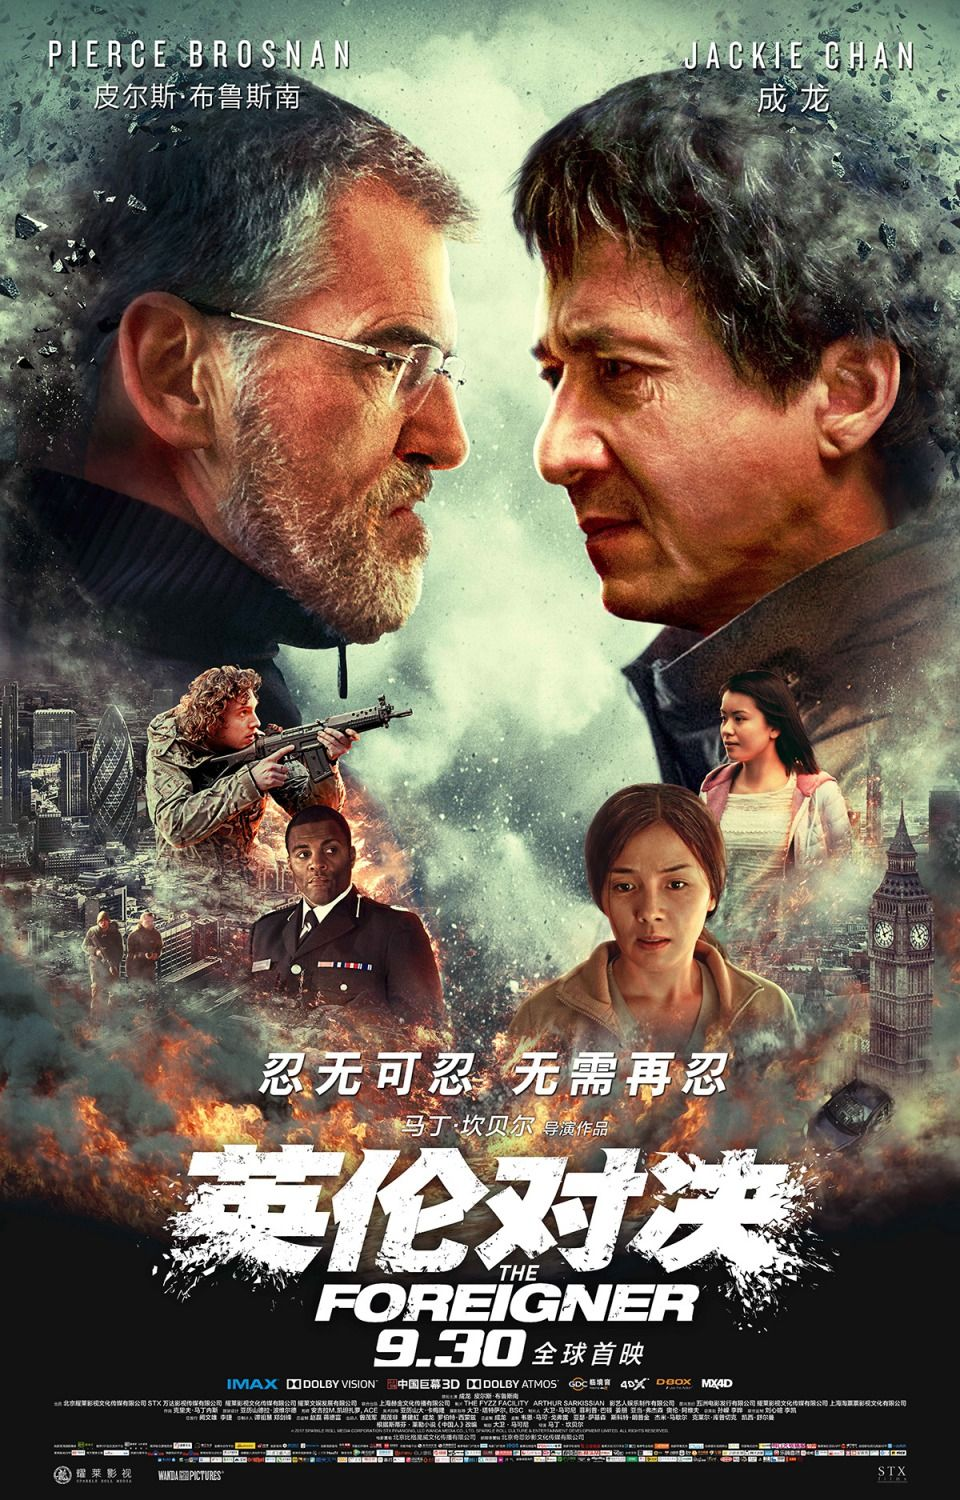 The Foreigner Movie Poster 11 W A